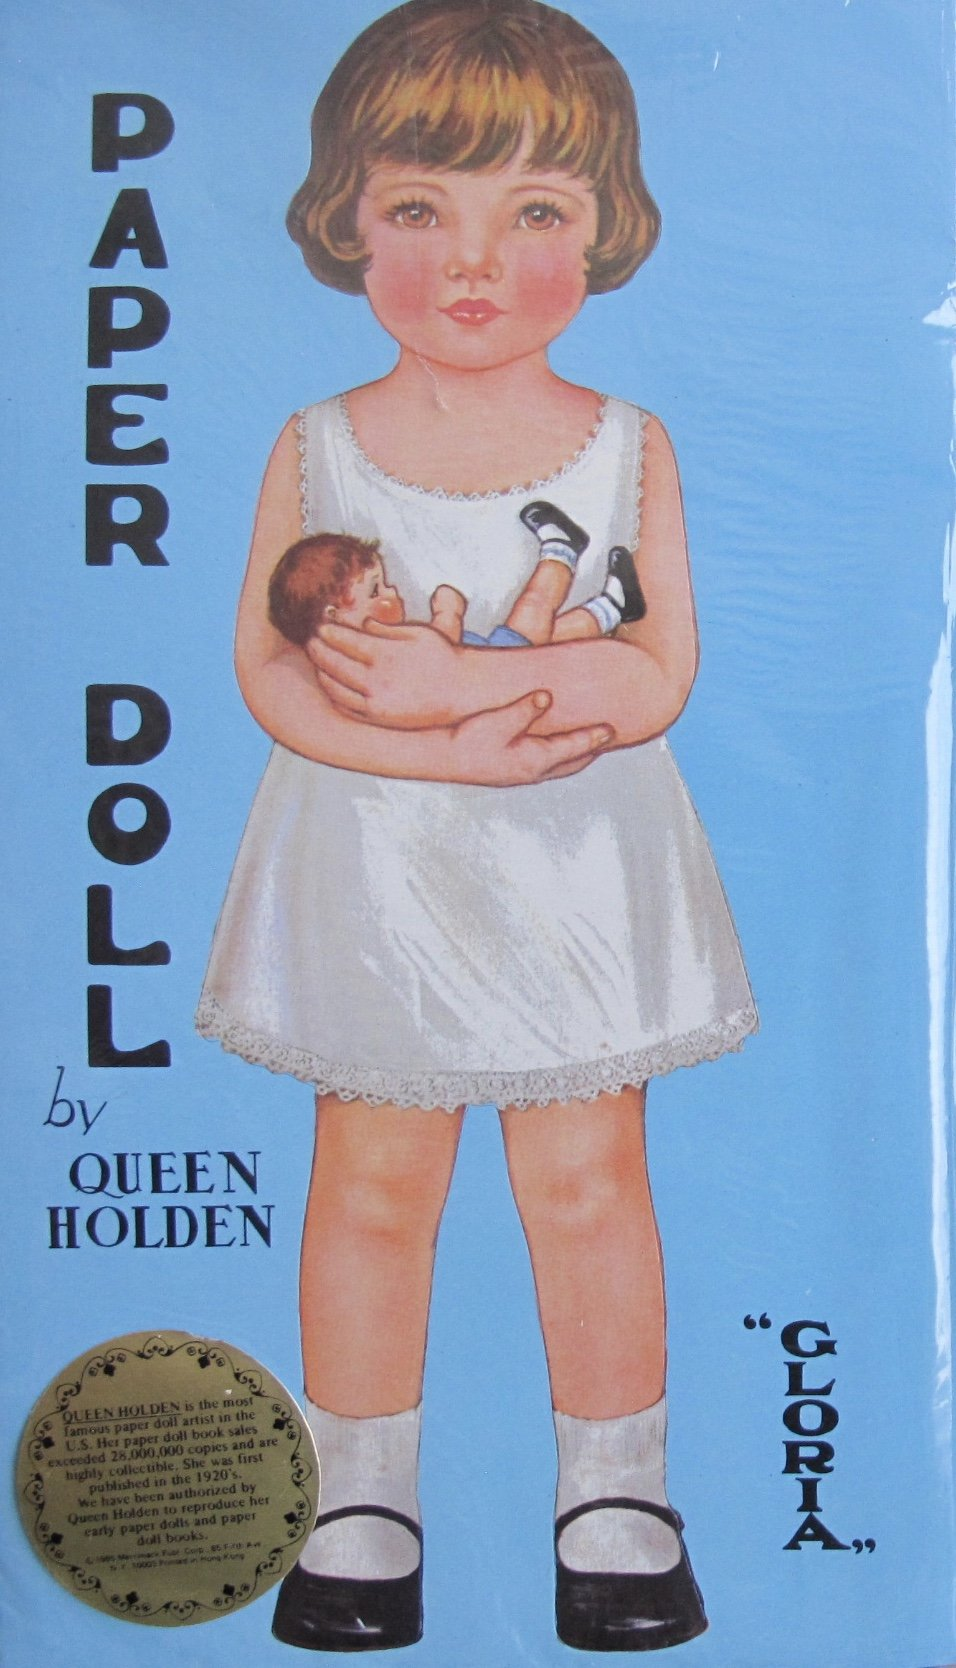 Gloria & Sonny Paper Dolls Book (Uncut) by Queen Holden w 2 Dolls & Fashions (1985 Merrimack)